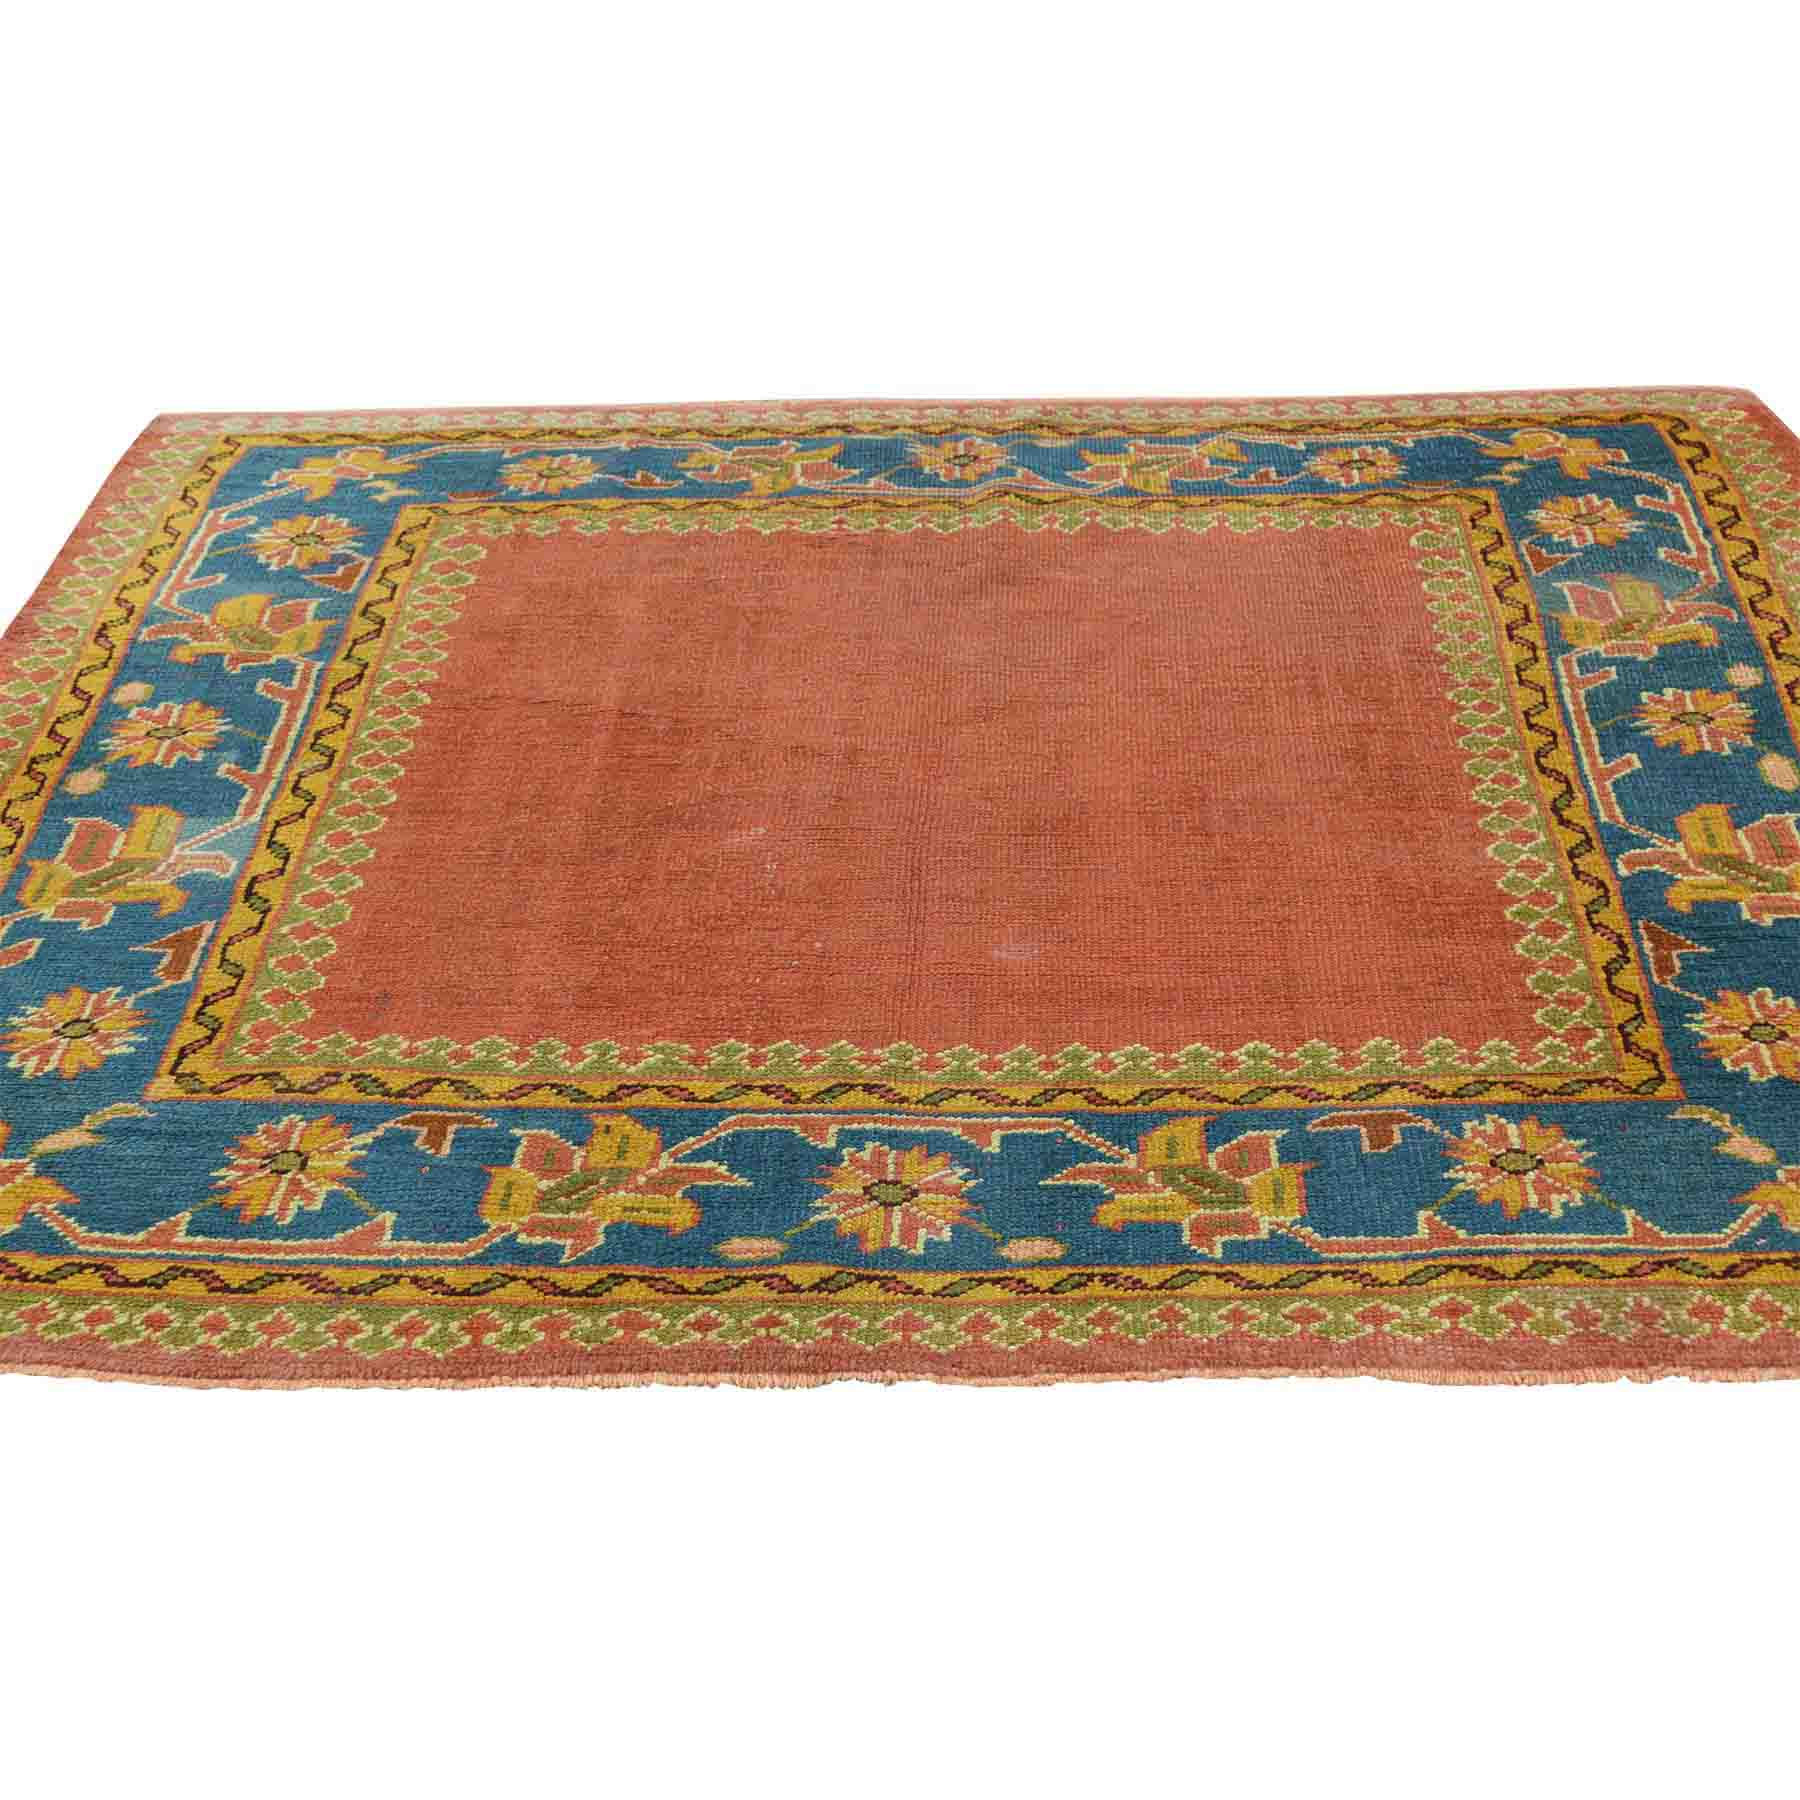 Antique-Hand-Knotted-Rug-179700